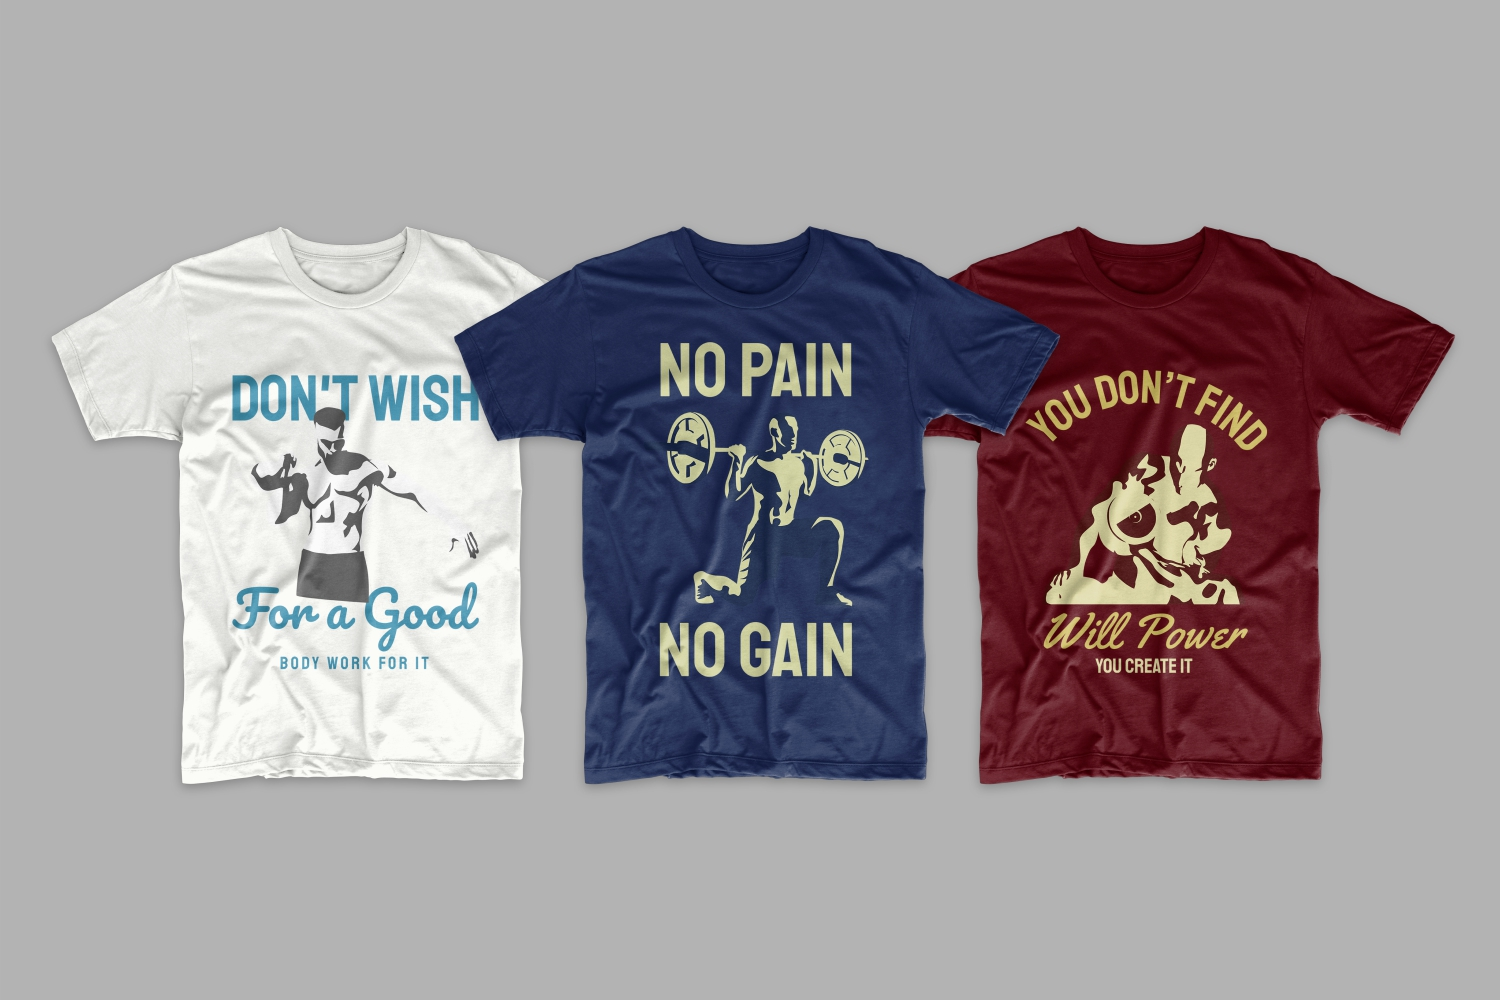 T-shirts in different colors about sports goals and achievements.